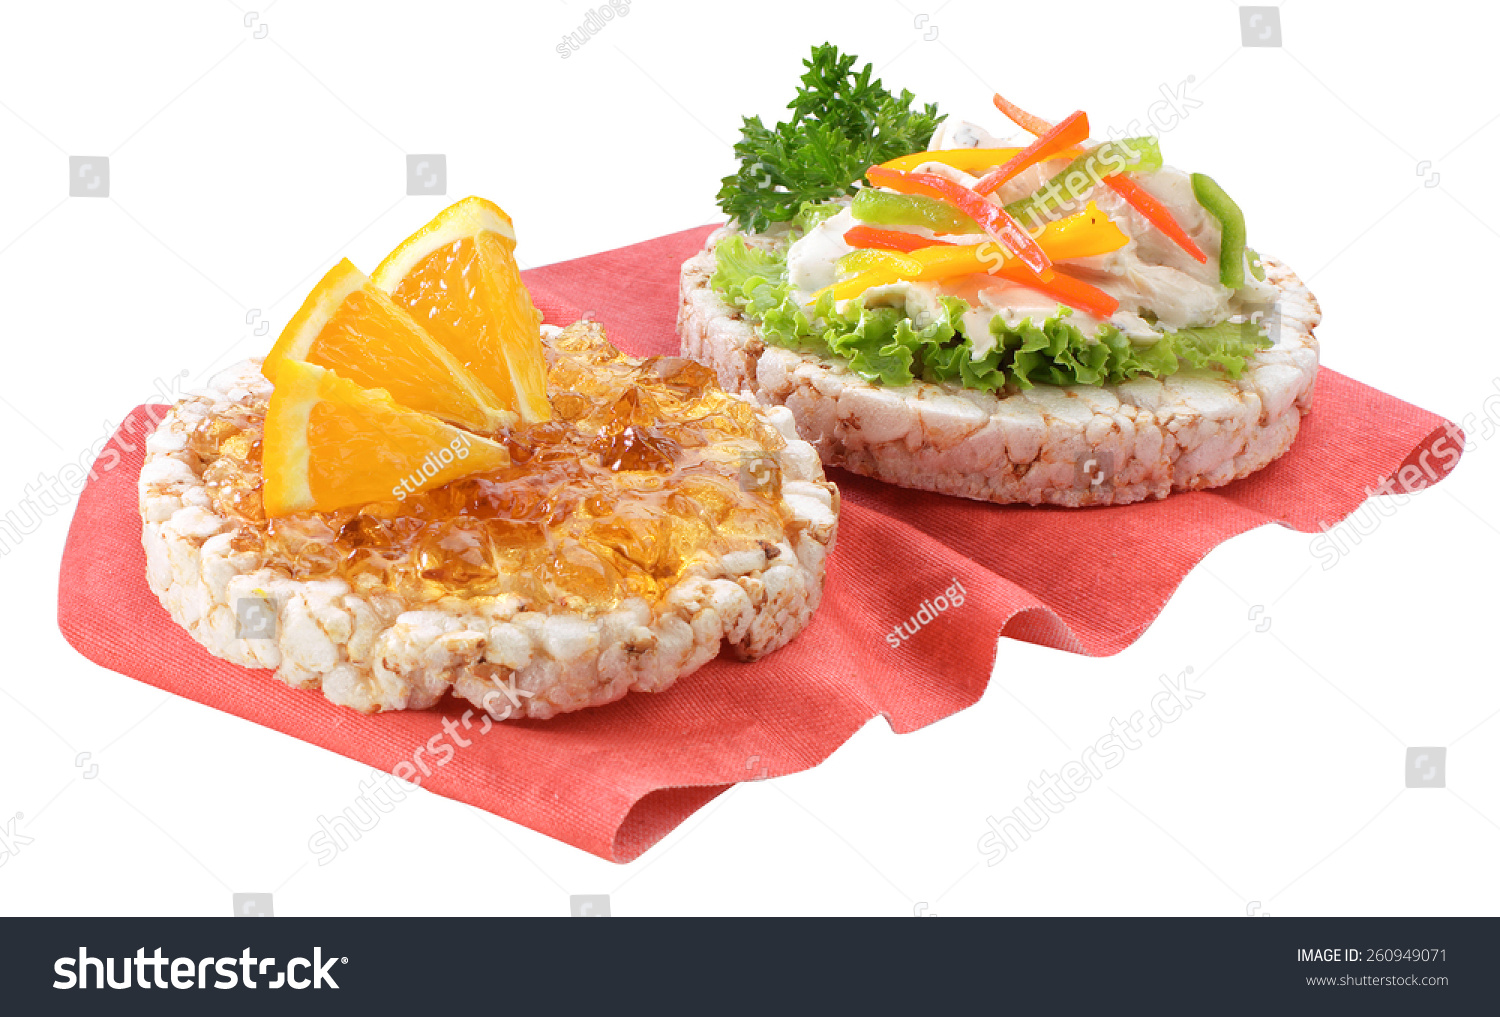 Canape appetizer stock photo 260949071 shutterstock for What is a canape appetizer